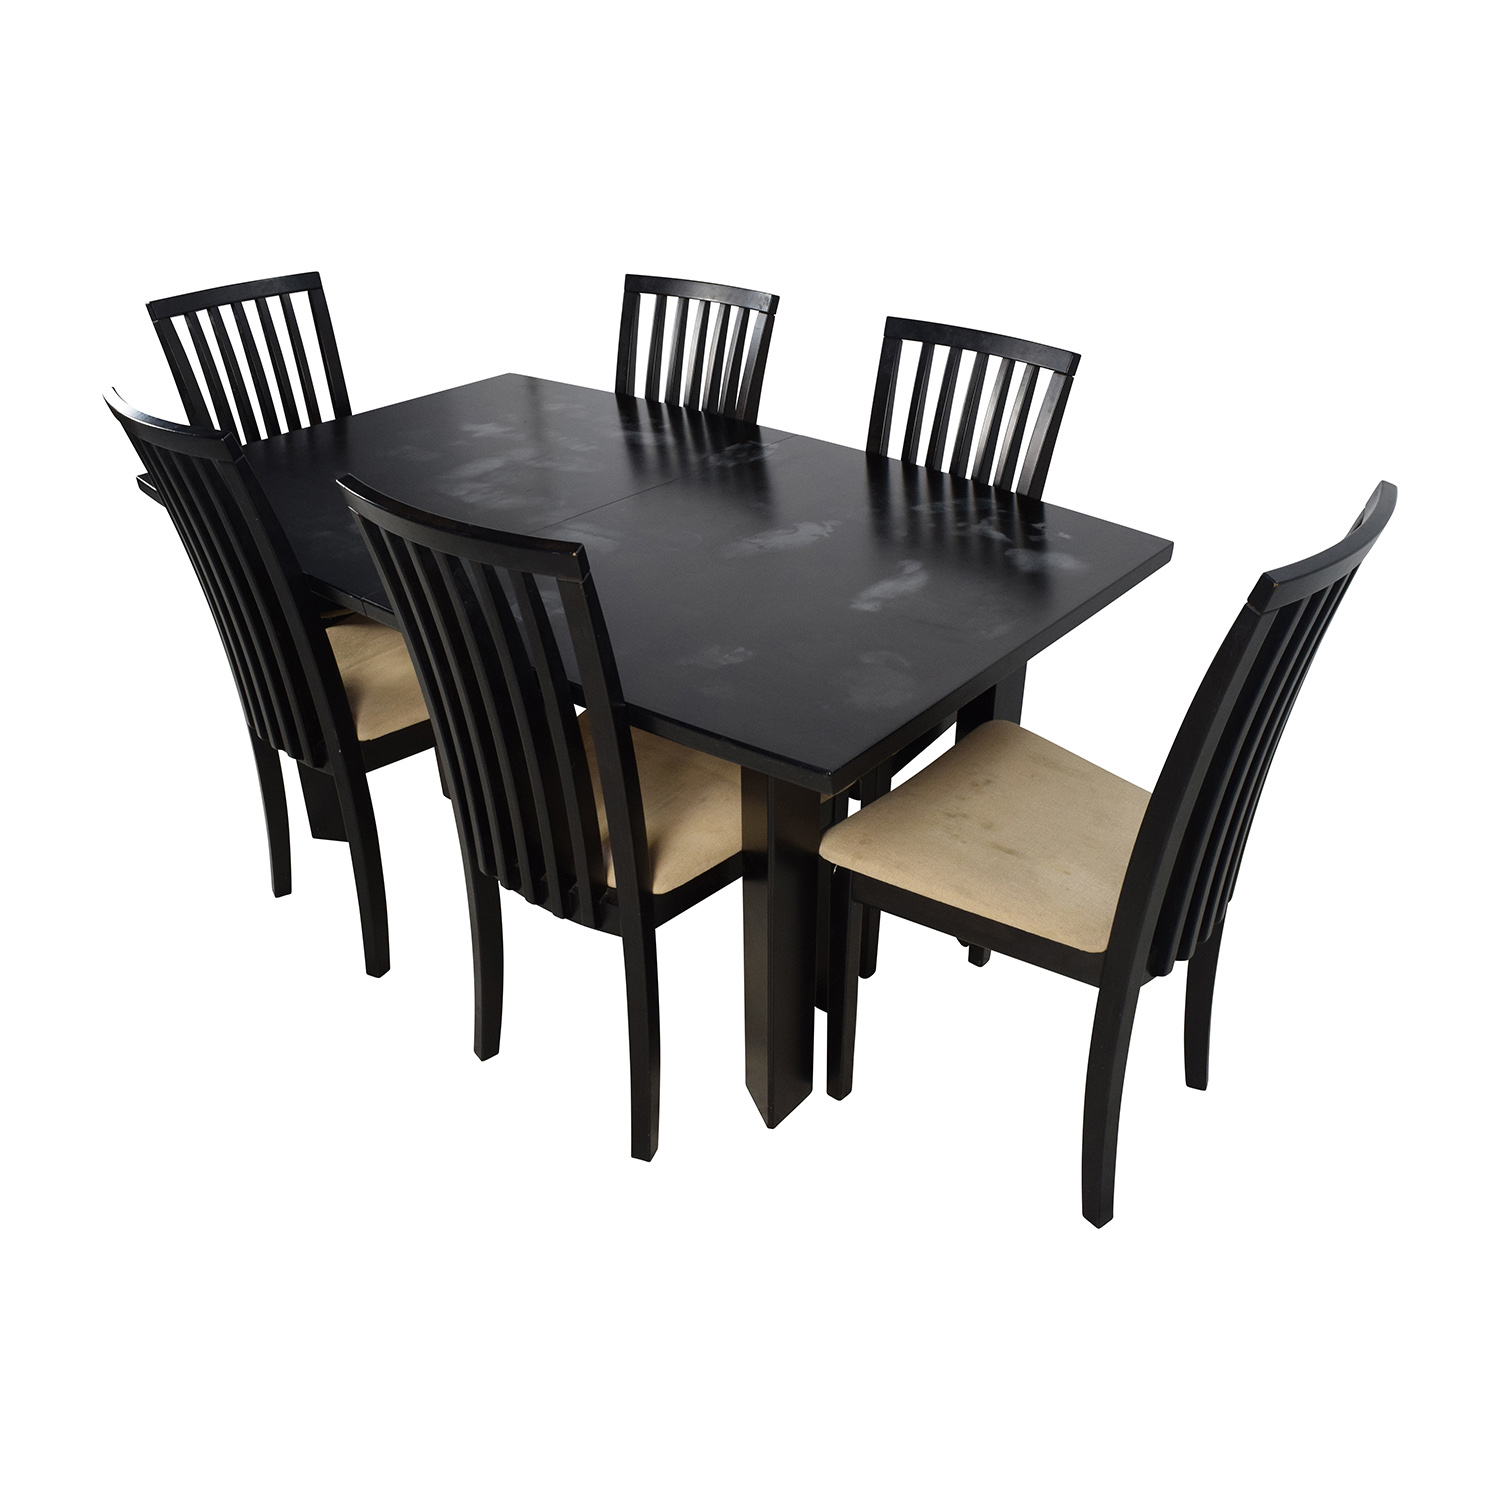 Skovby SM 24 Dining Table with Butterfly Extensions and Six Chairs sale